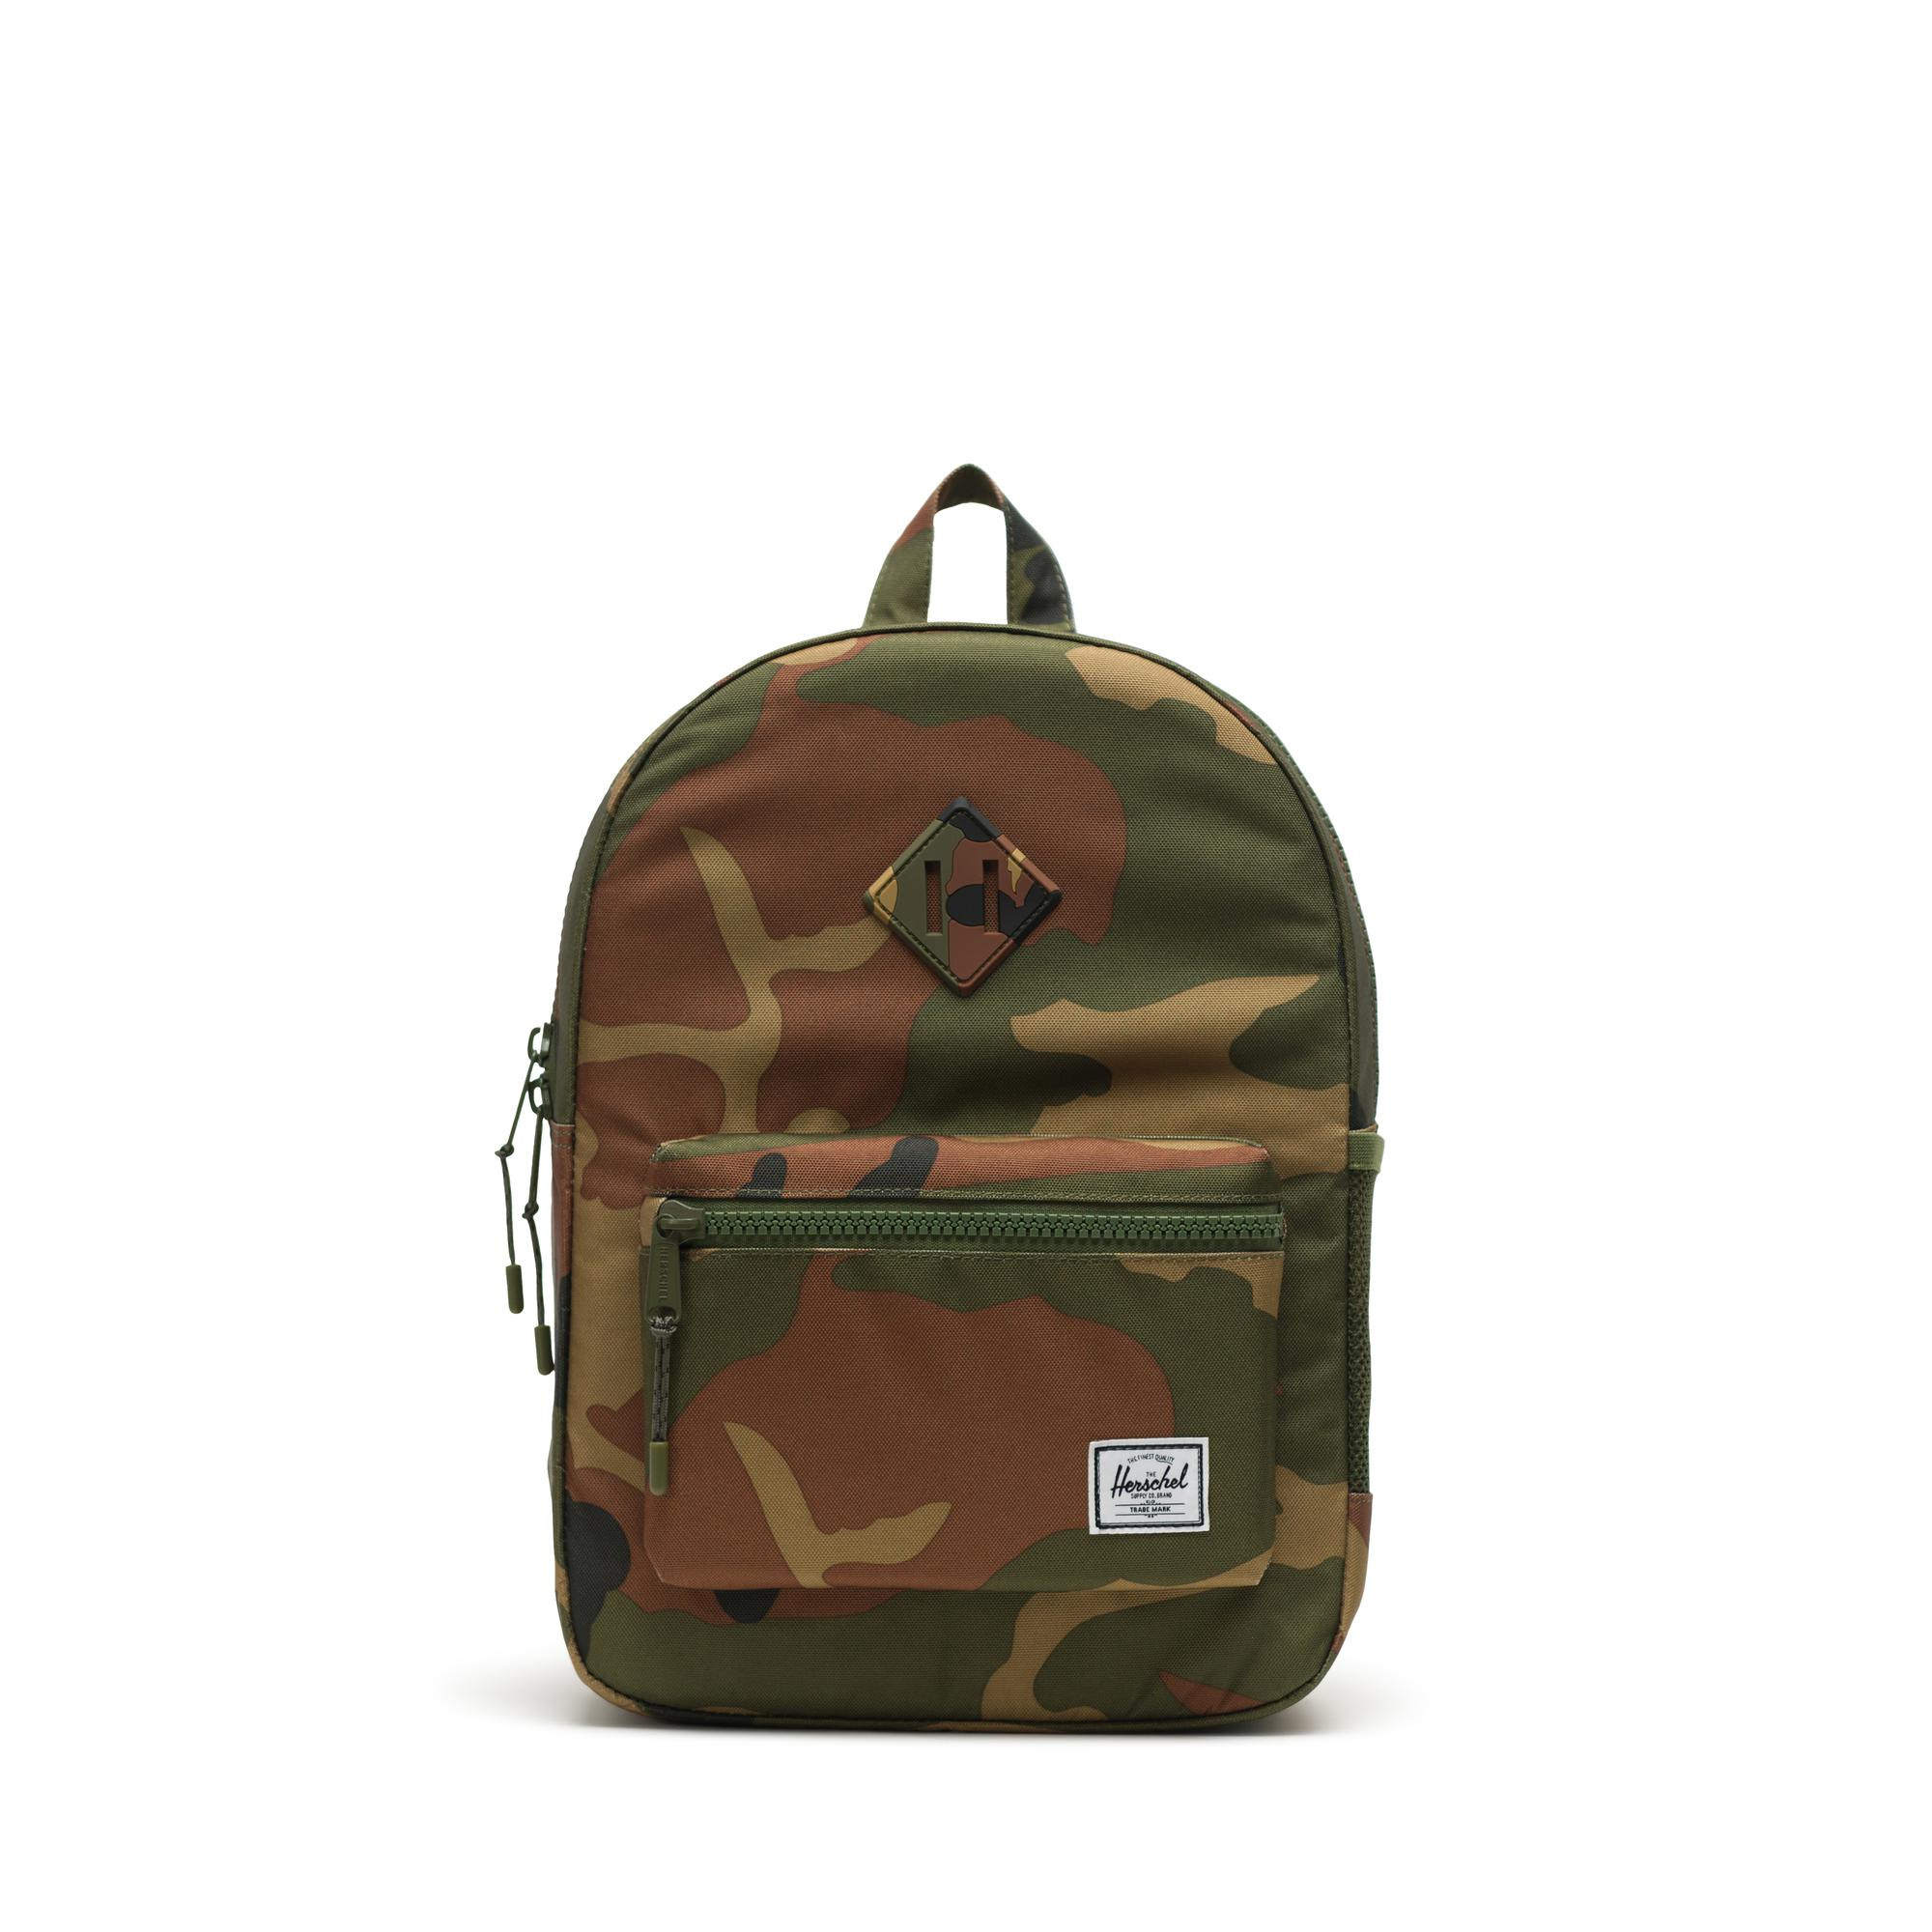 63793c8975f Heritage Backpack Youth